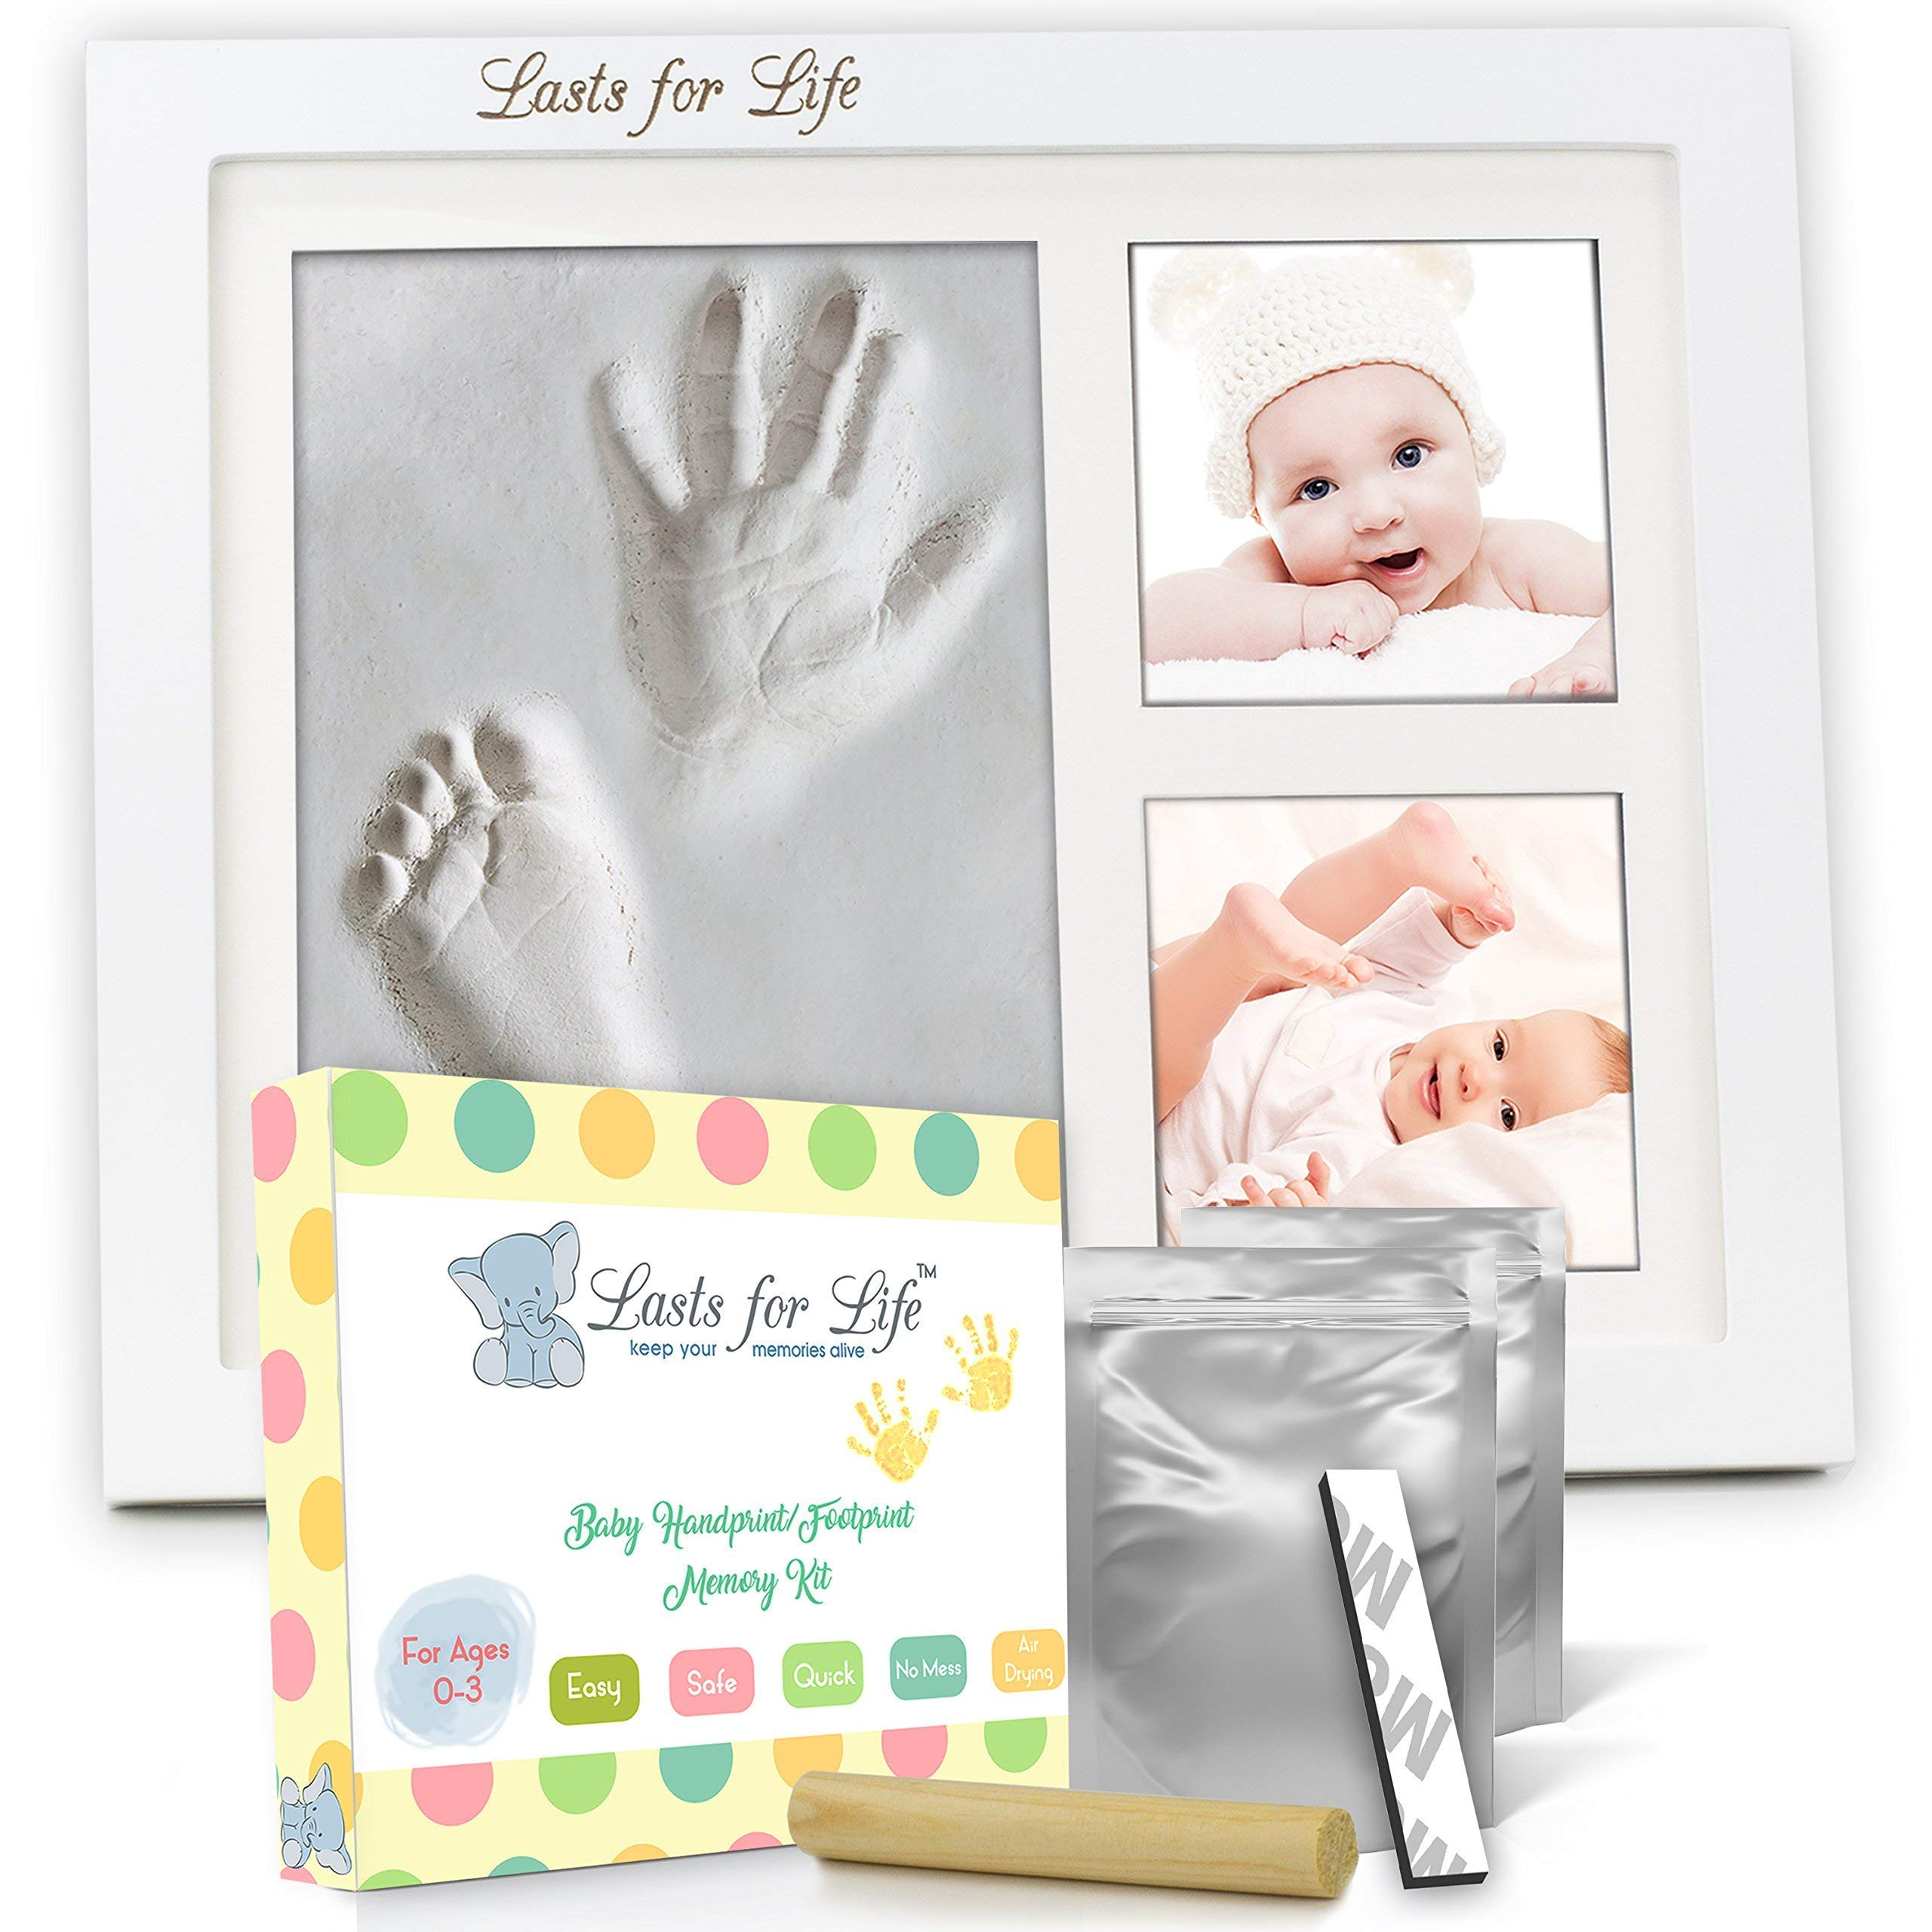 Your Baby's Handprint Footprint Memory Kit - Video Inside - The One and Only Special Engraved Version! Premium Quality Clay Mold & Picture Frame Keepsake Kit, Unique Baby Shower Gift